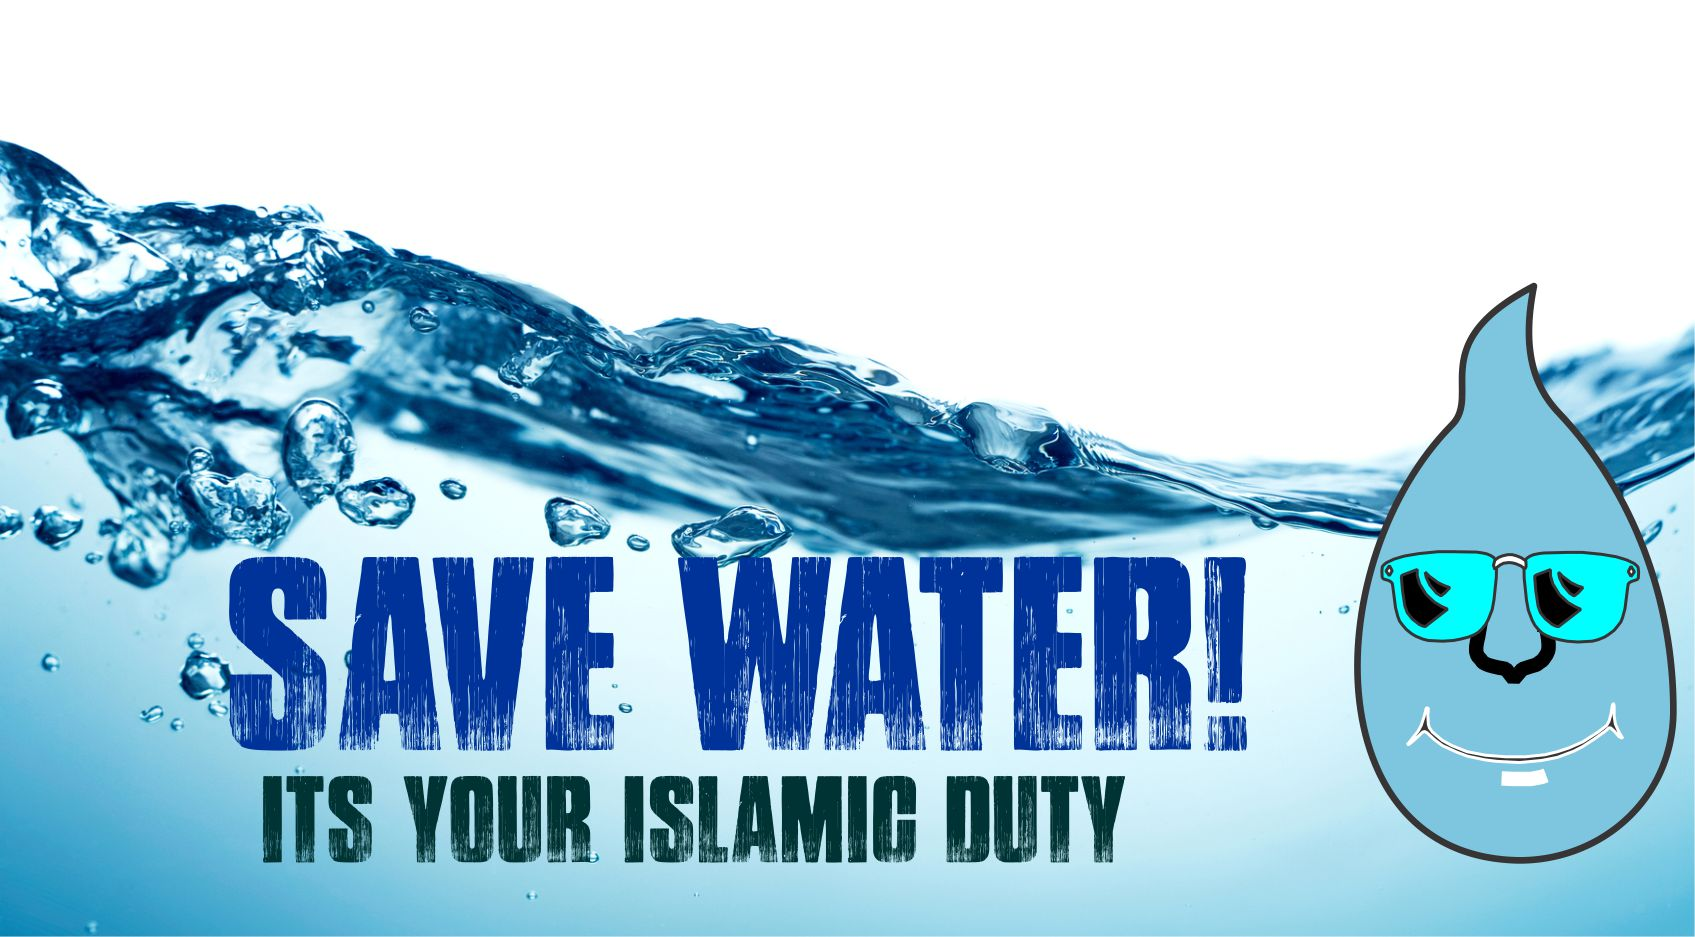 - water poster2curves - Muslim community urged to save water despite level 3 restrictions